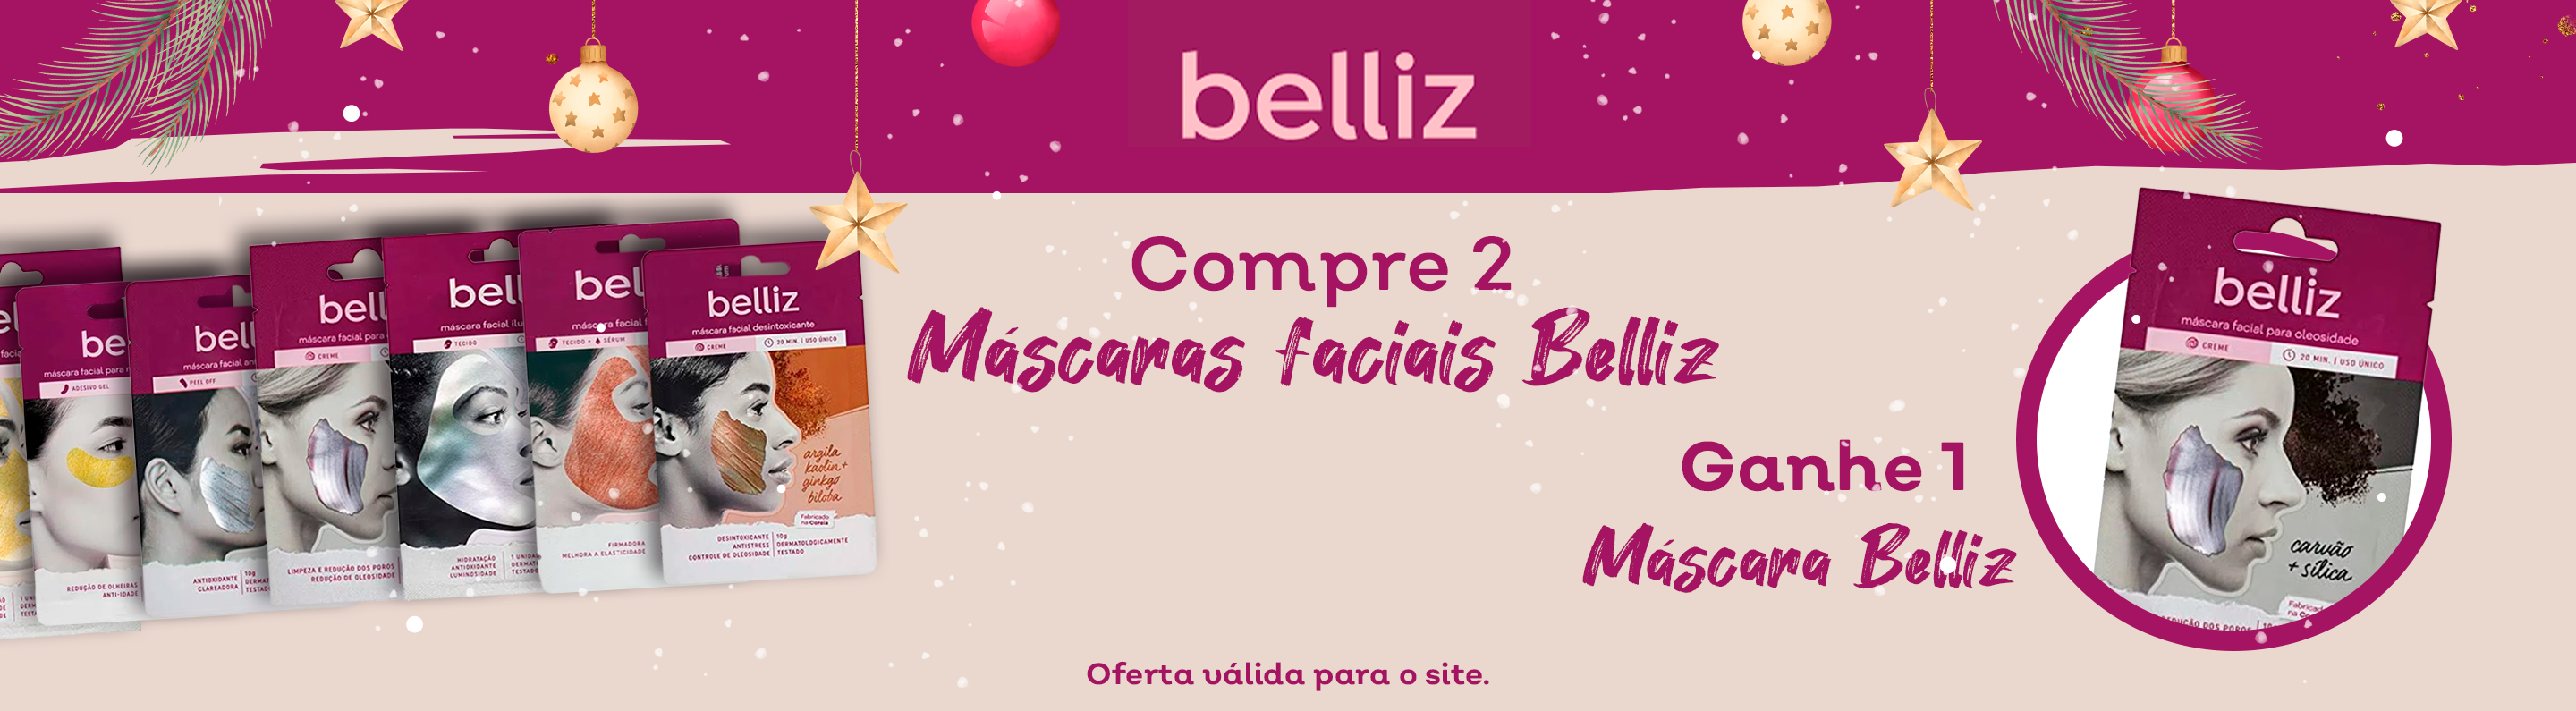 Mascara Facial Belliz C2G1